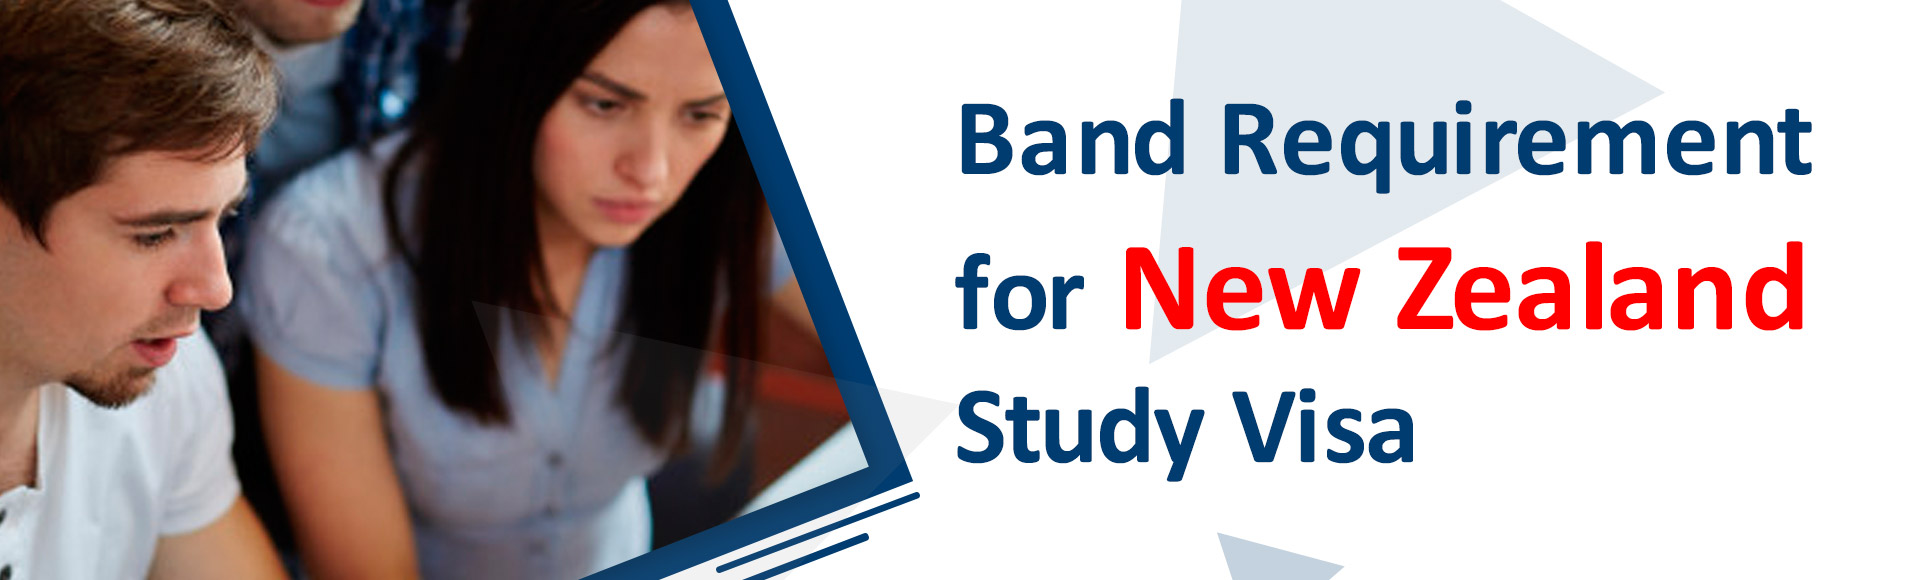 Band requirement for New Zealand study visa